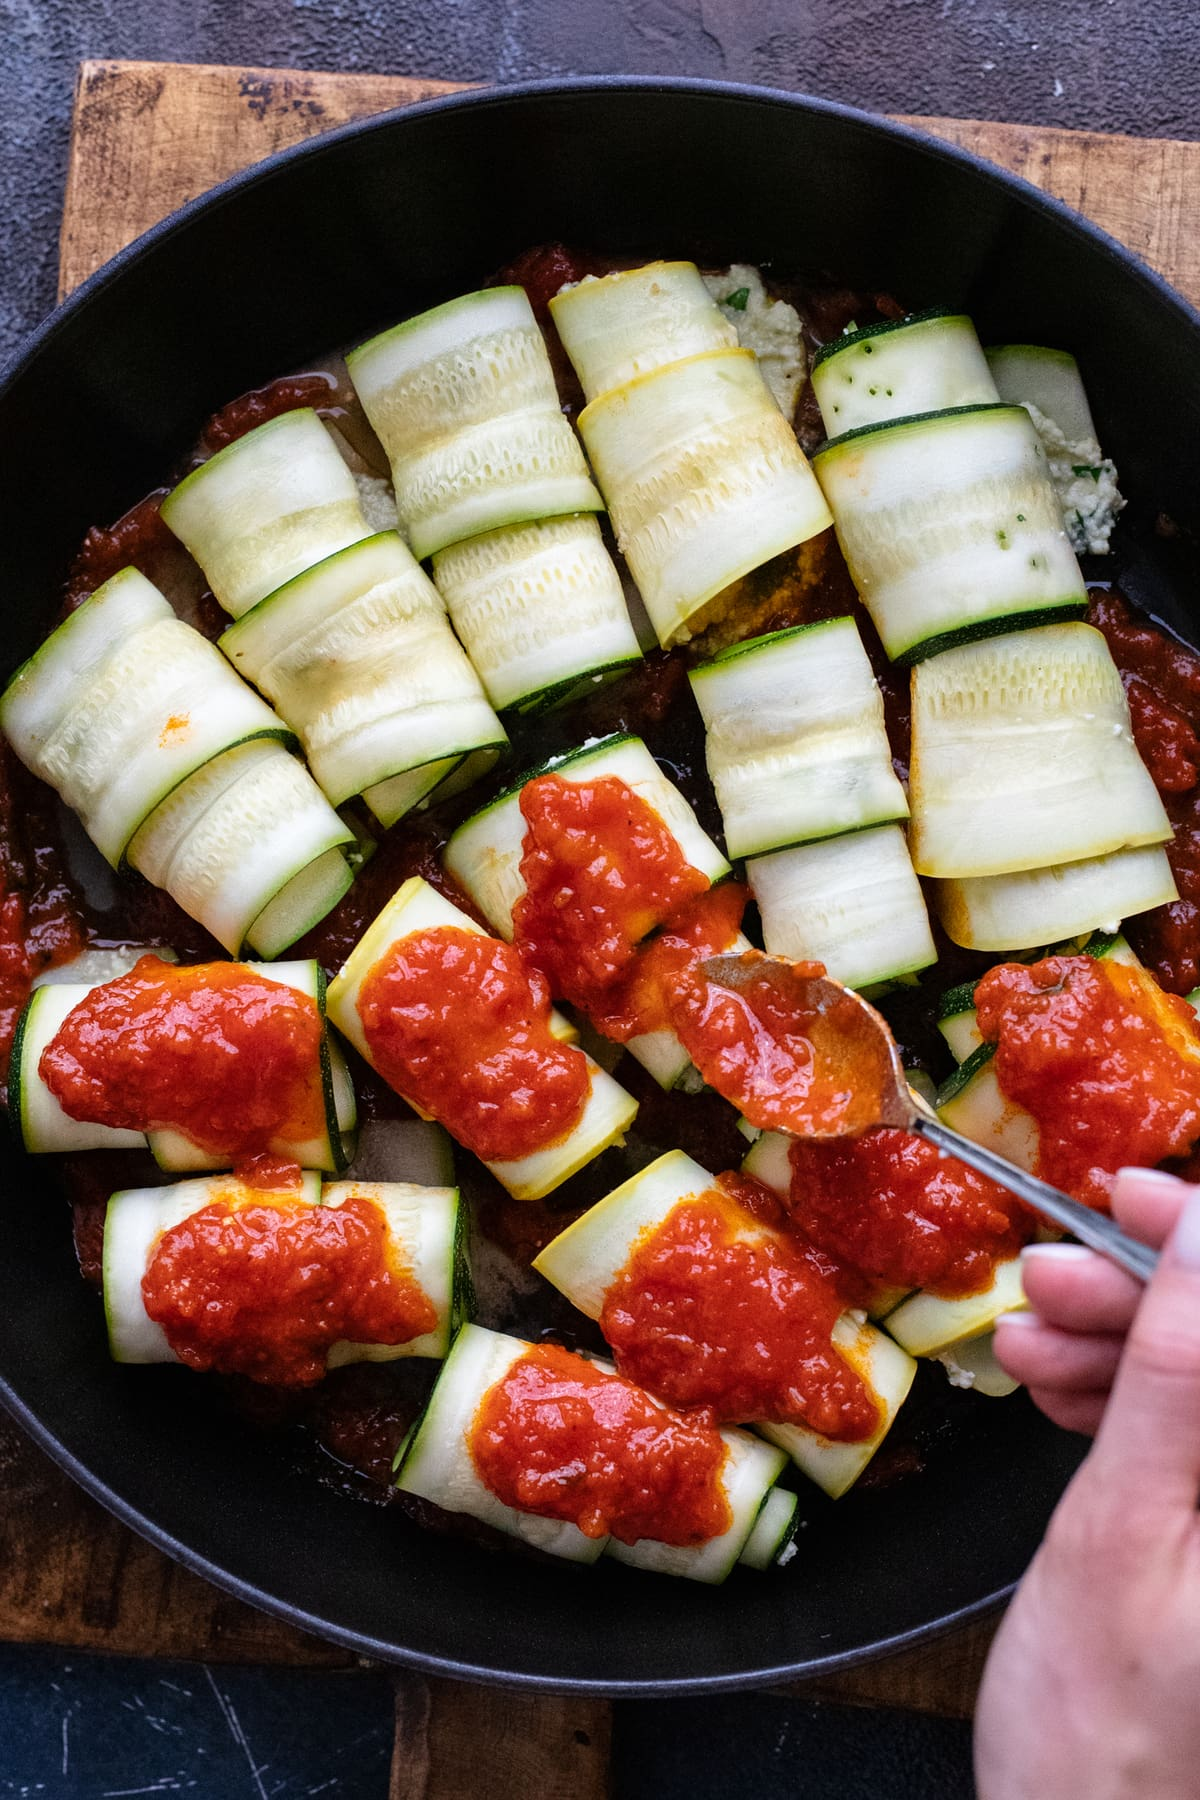 hand spooning red sauce over zucchini rollatini in black skillet.